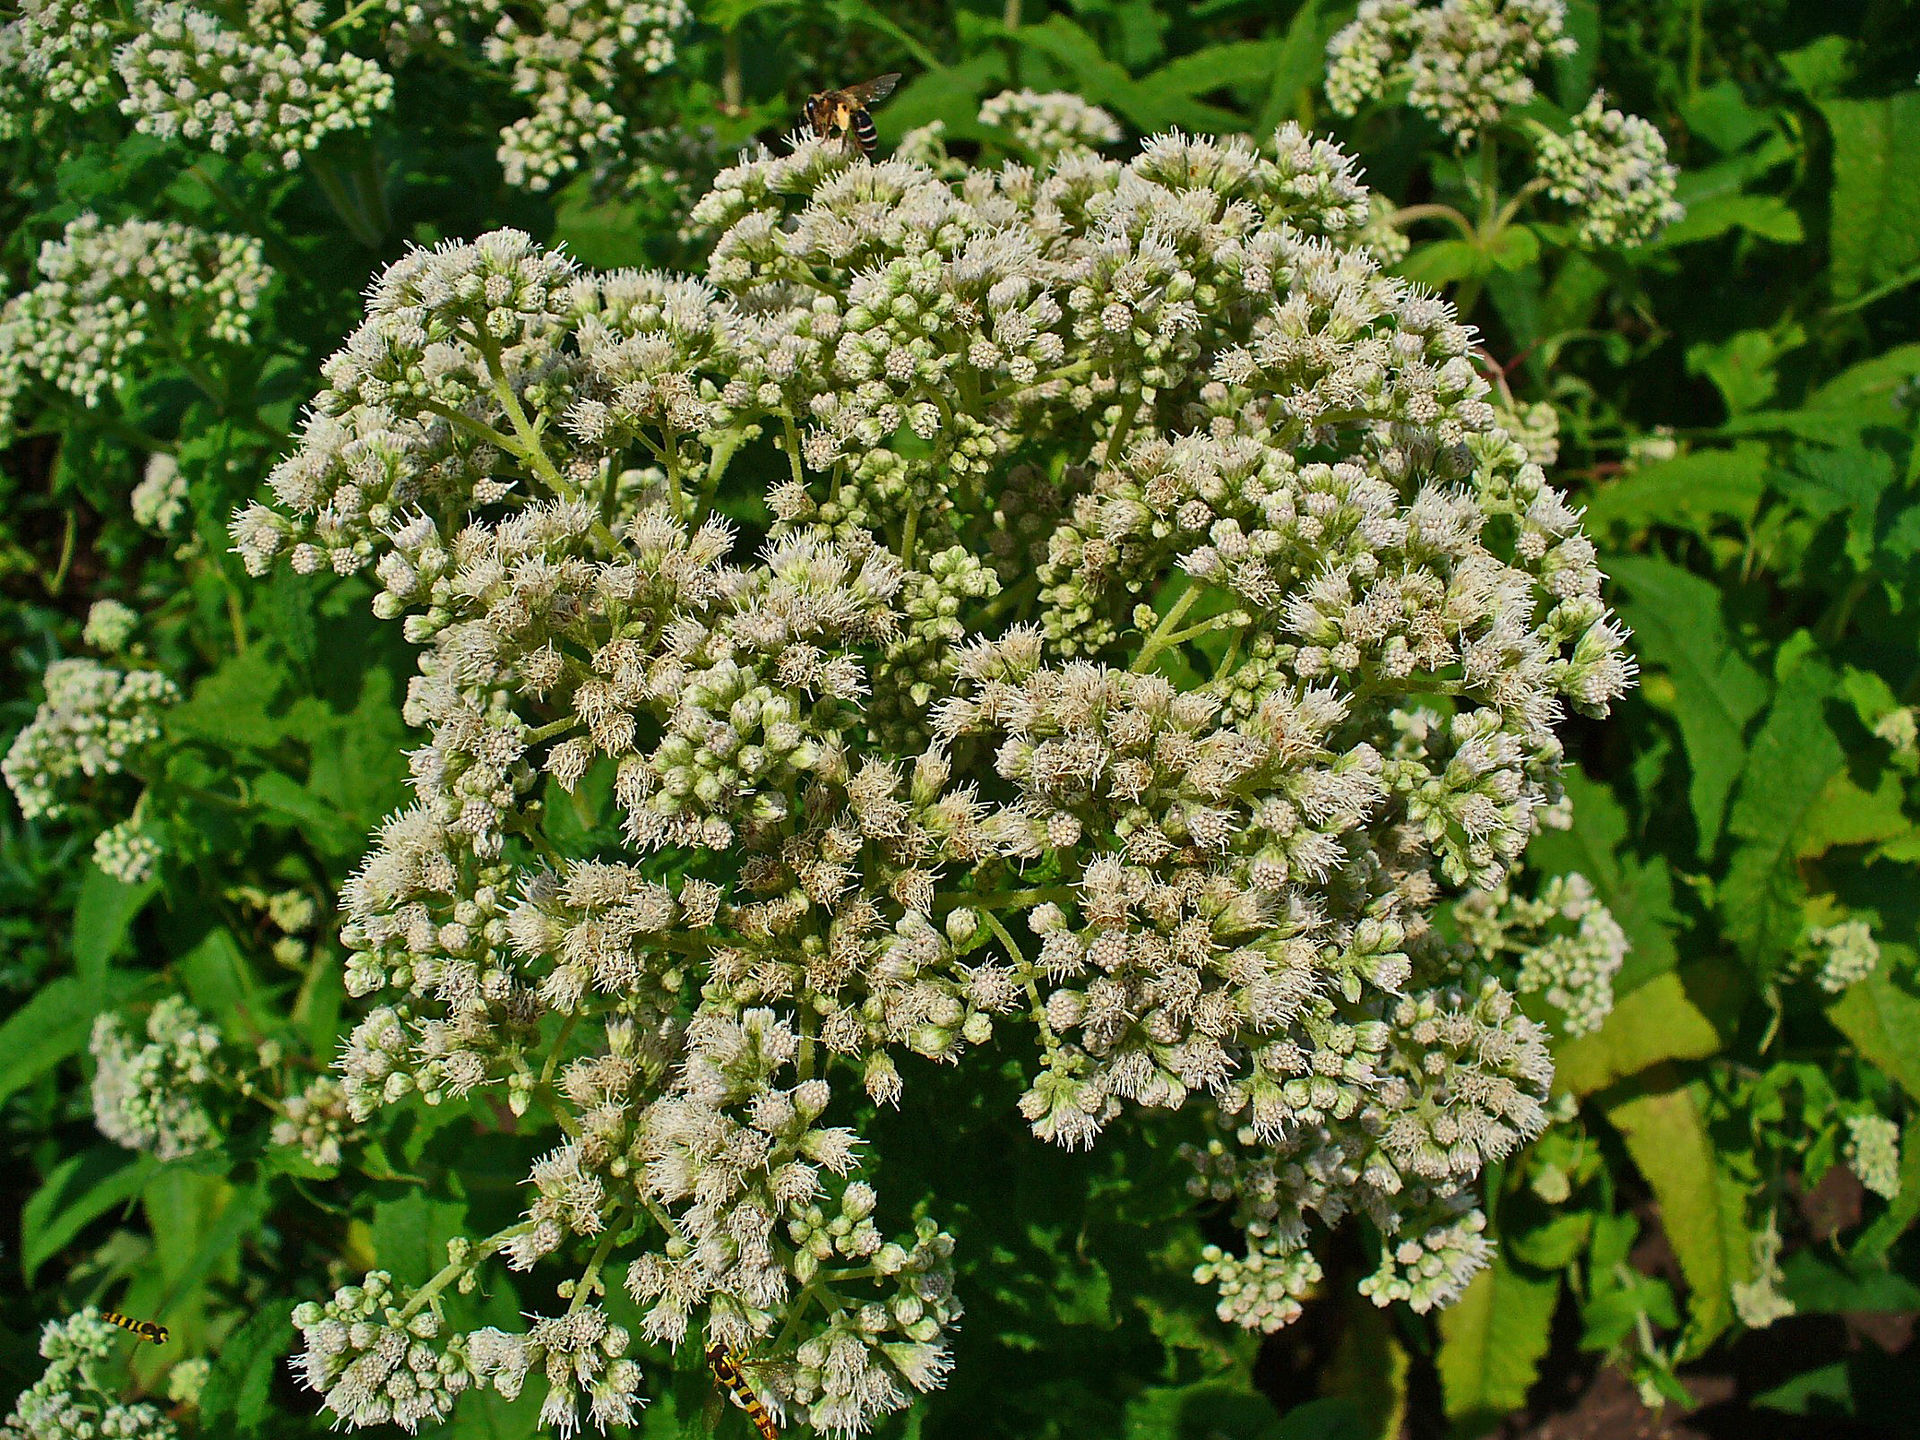 A photo of Eupatorium perfoliatum